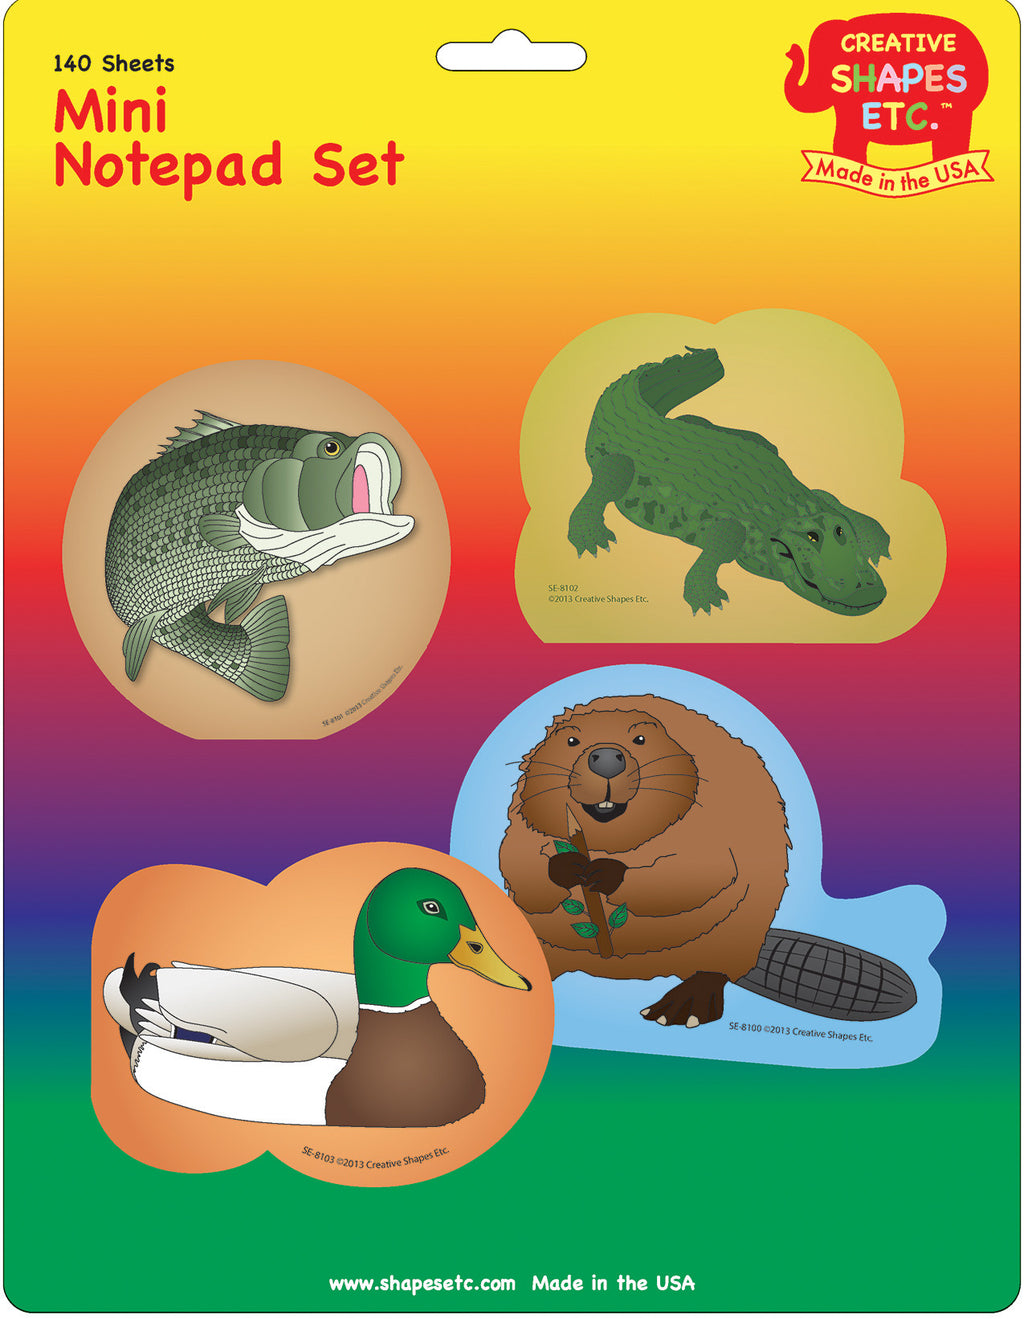 Mini Notepad Set - In-Season Water - Creative Shapes Etc.